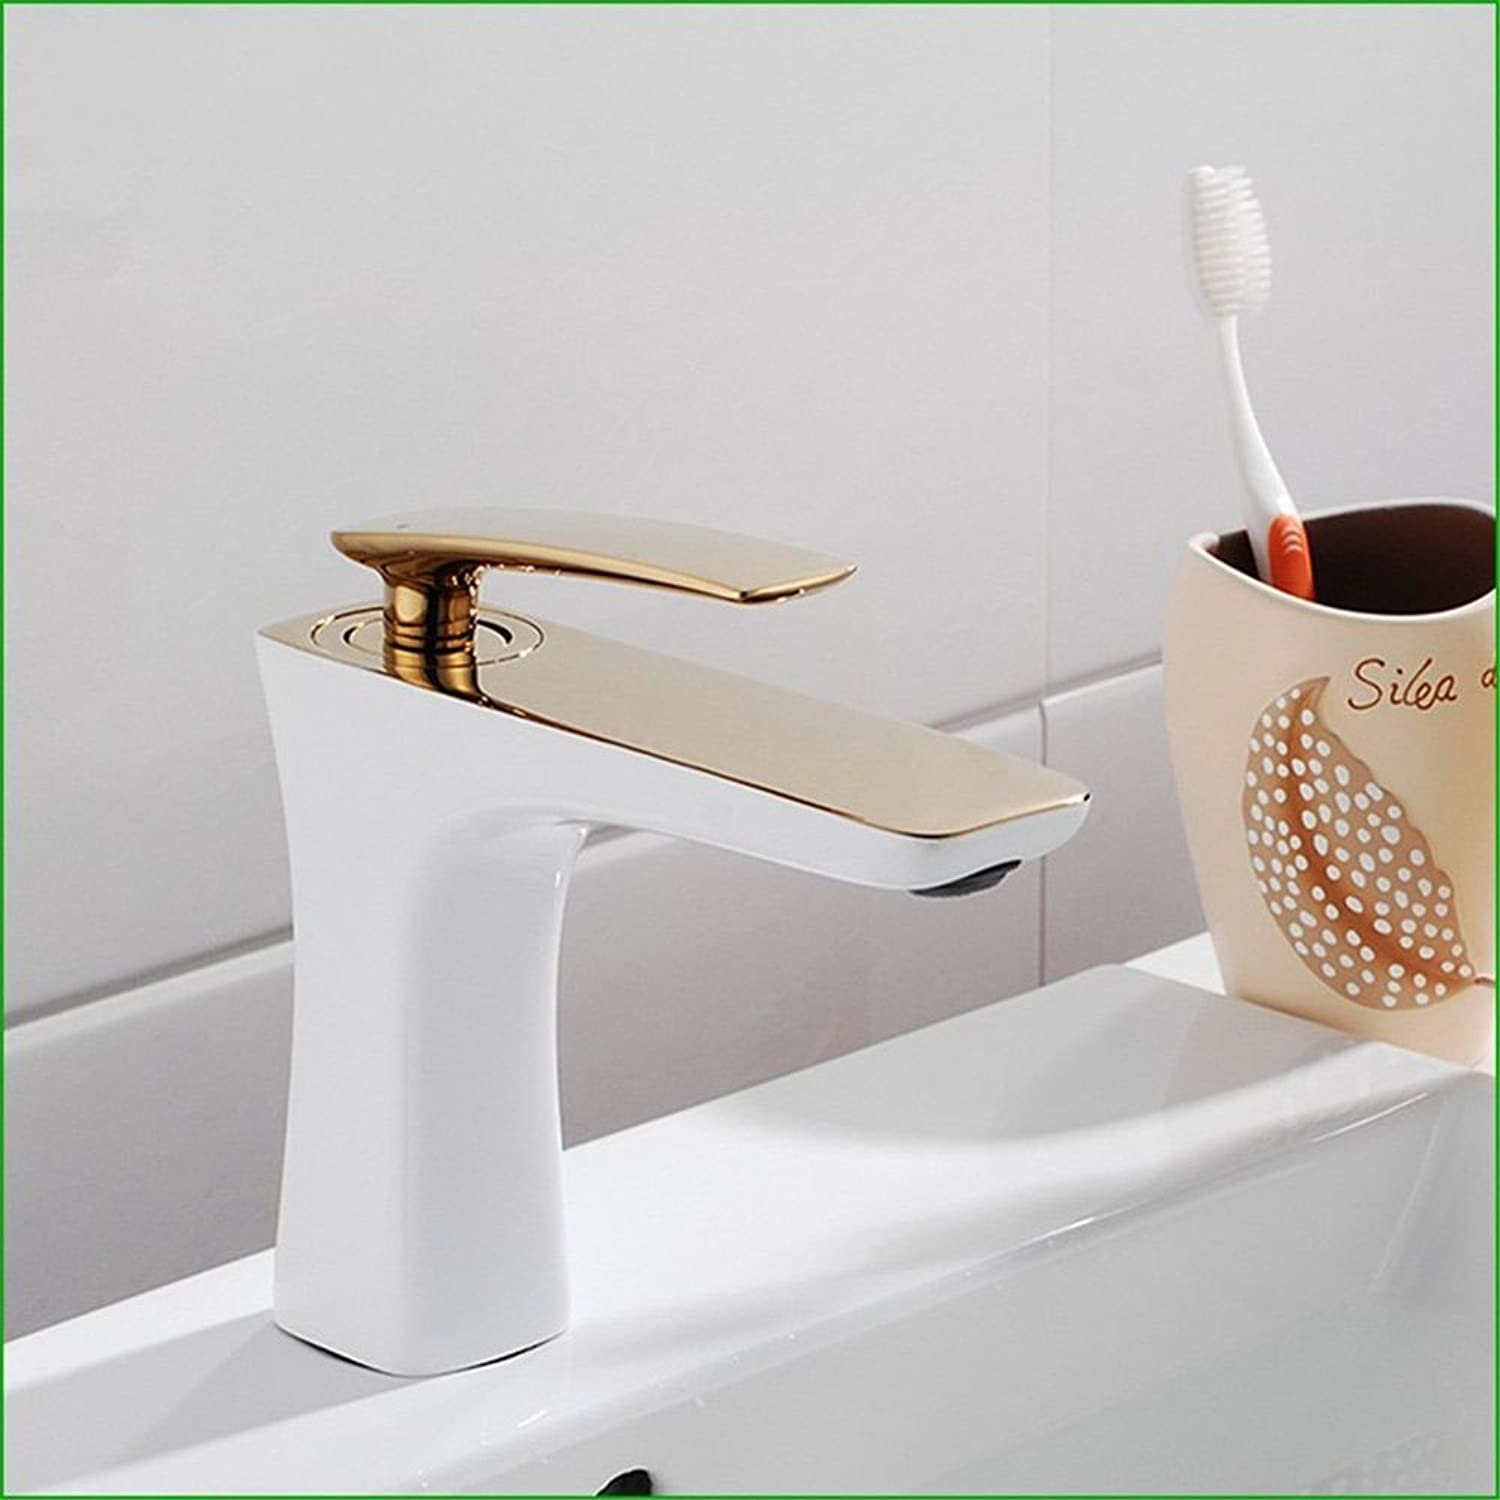 Bijjaladeva Antique Bathroom Sink Vessel Faucet Basin Mixer Tap The gold grill white paint bathroom Washbasin Faucet roasted white paint full copper hot and cold-water faucet white